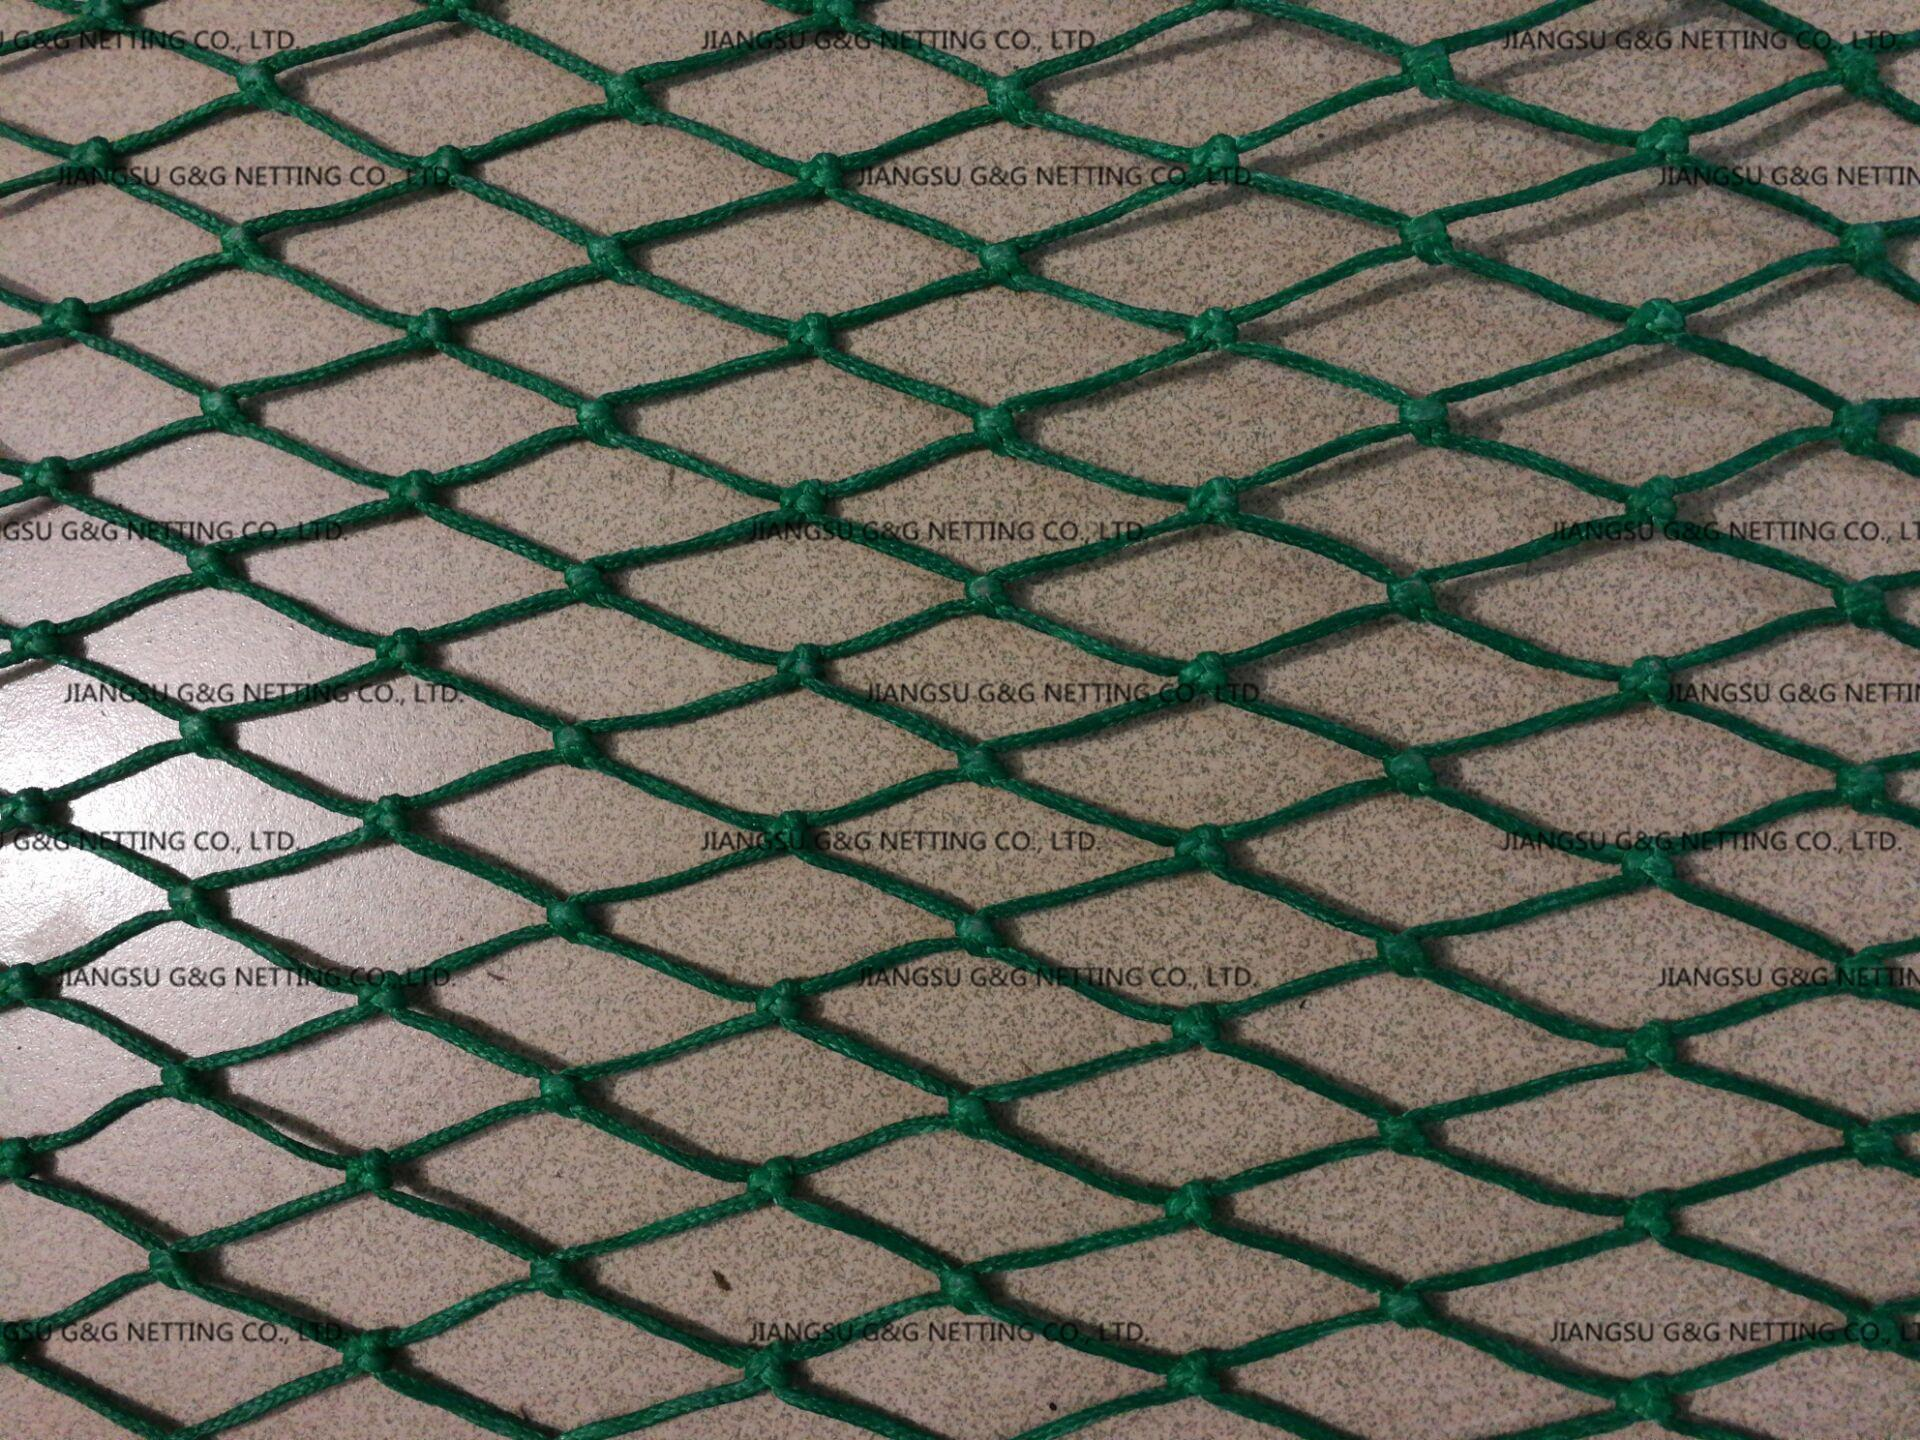 BRAIDED HMPE KNOTTED NETTING 4